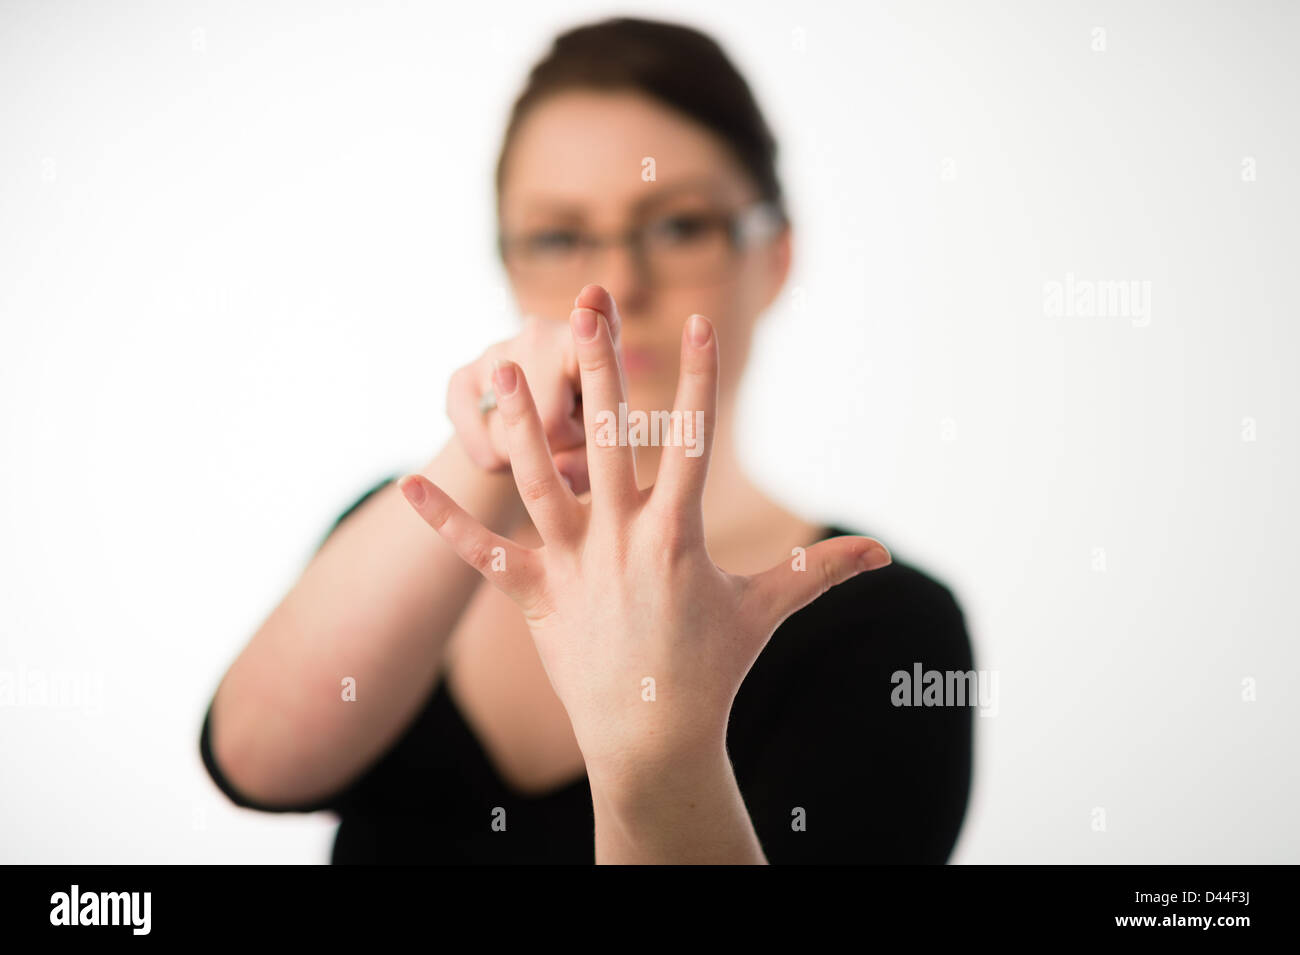 A young woman, brown hair, counting to five 5  on the fingers of her hand, UK - Stock Image